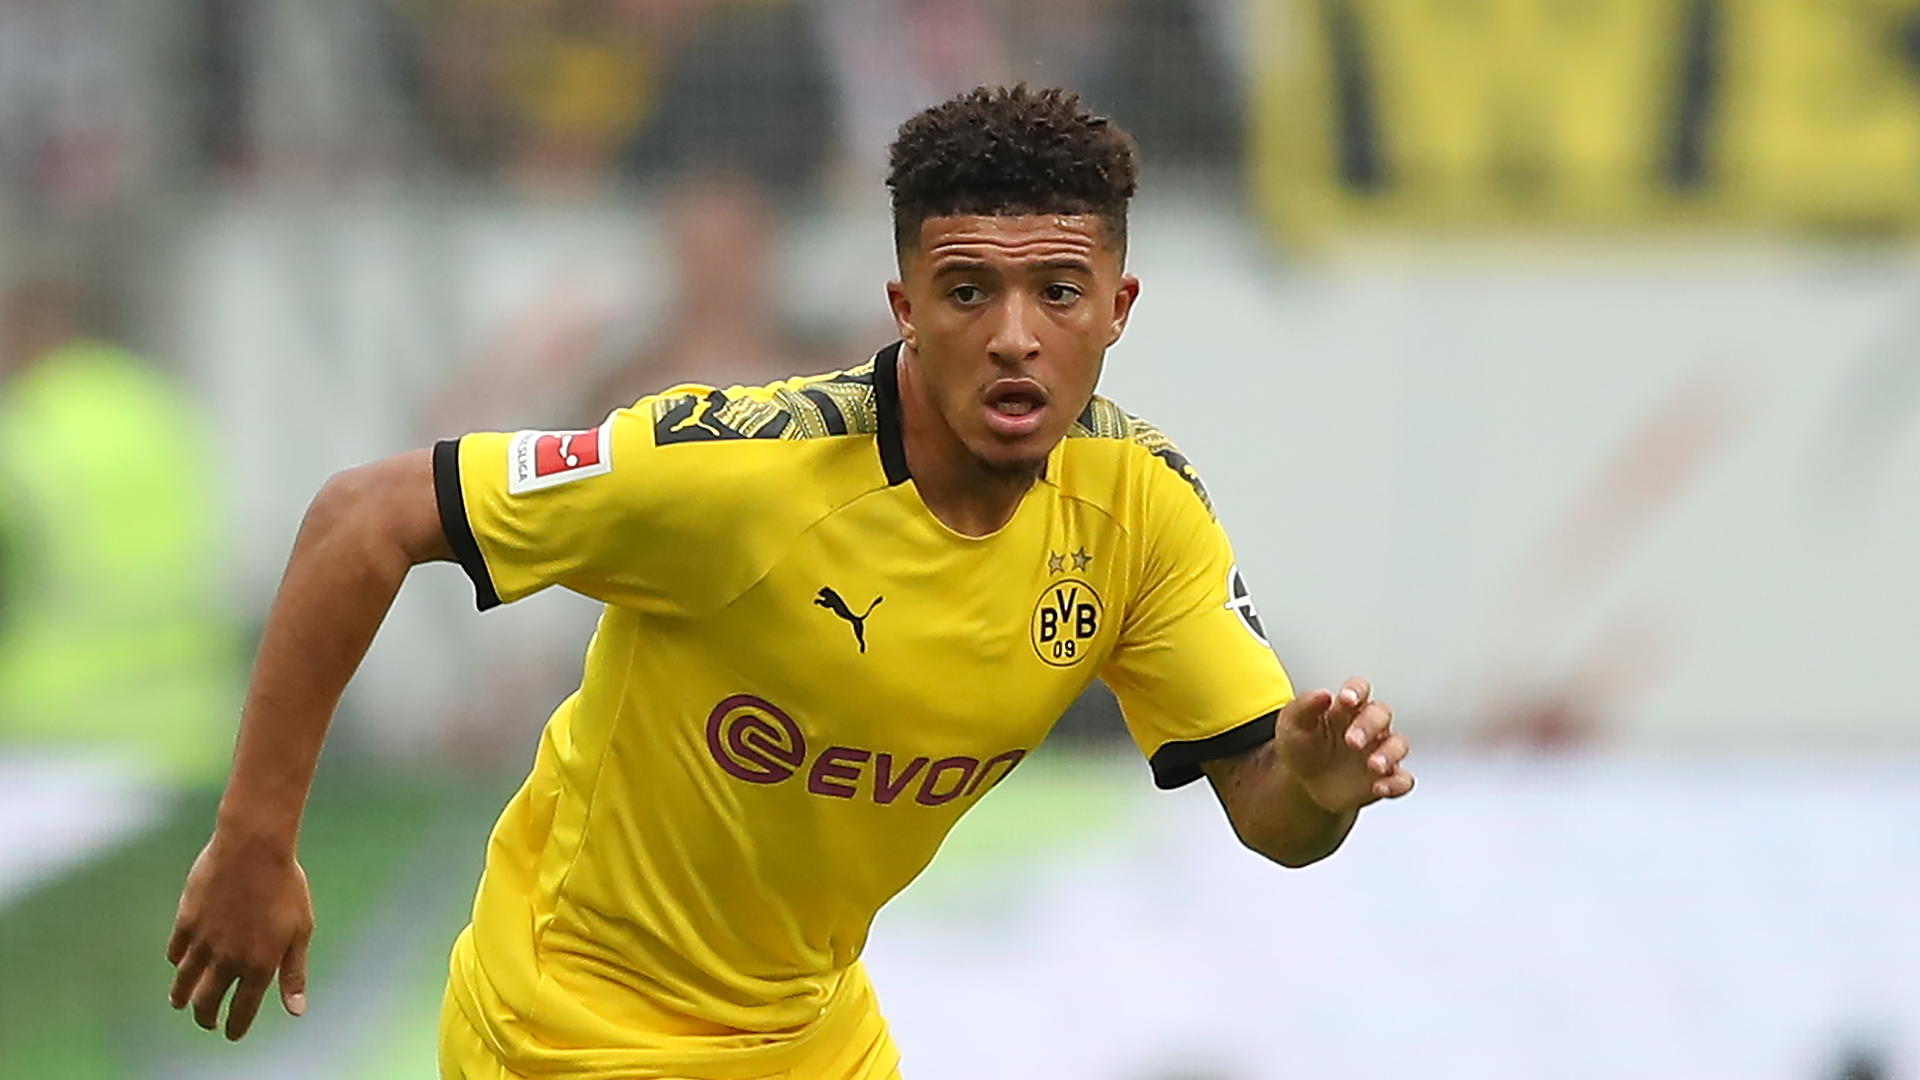 BVB hit Jadon Sancho with record fine: He pushes limits